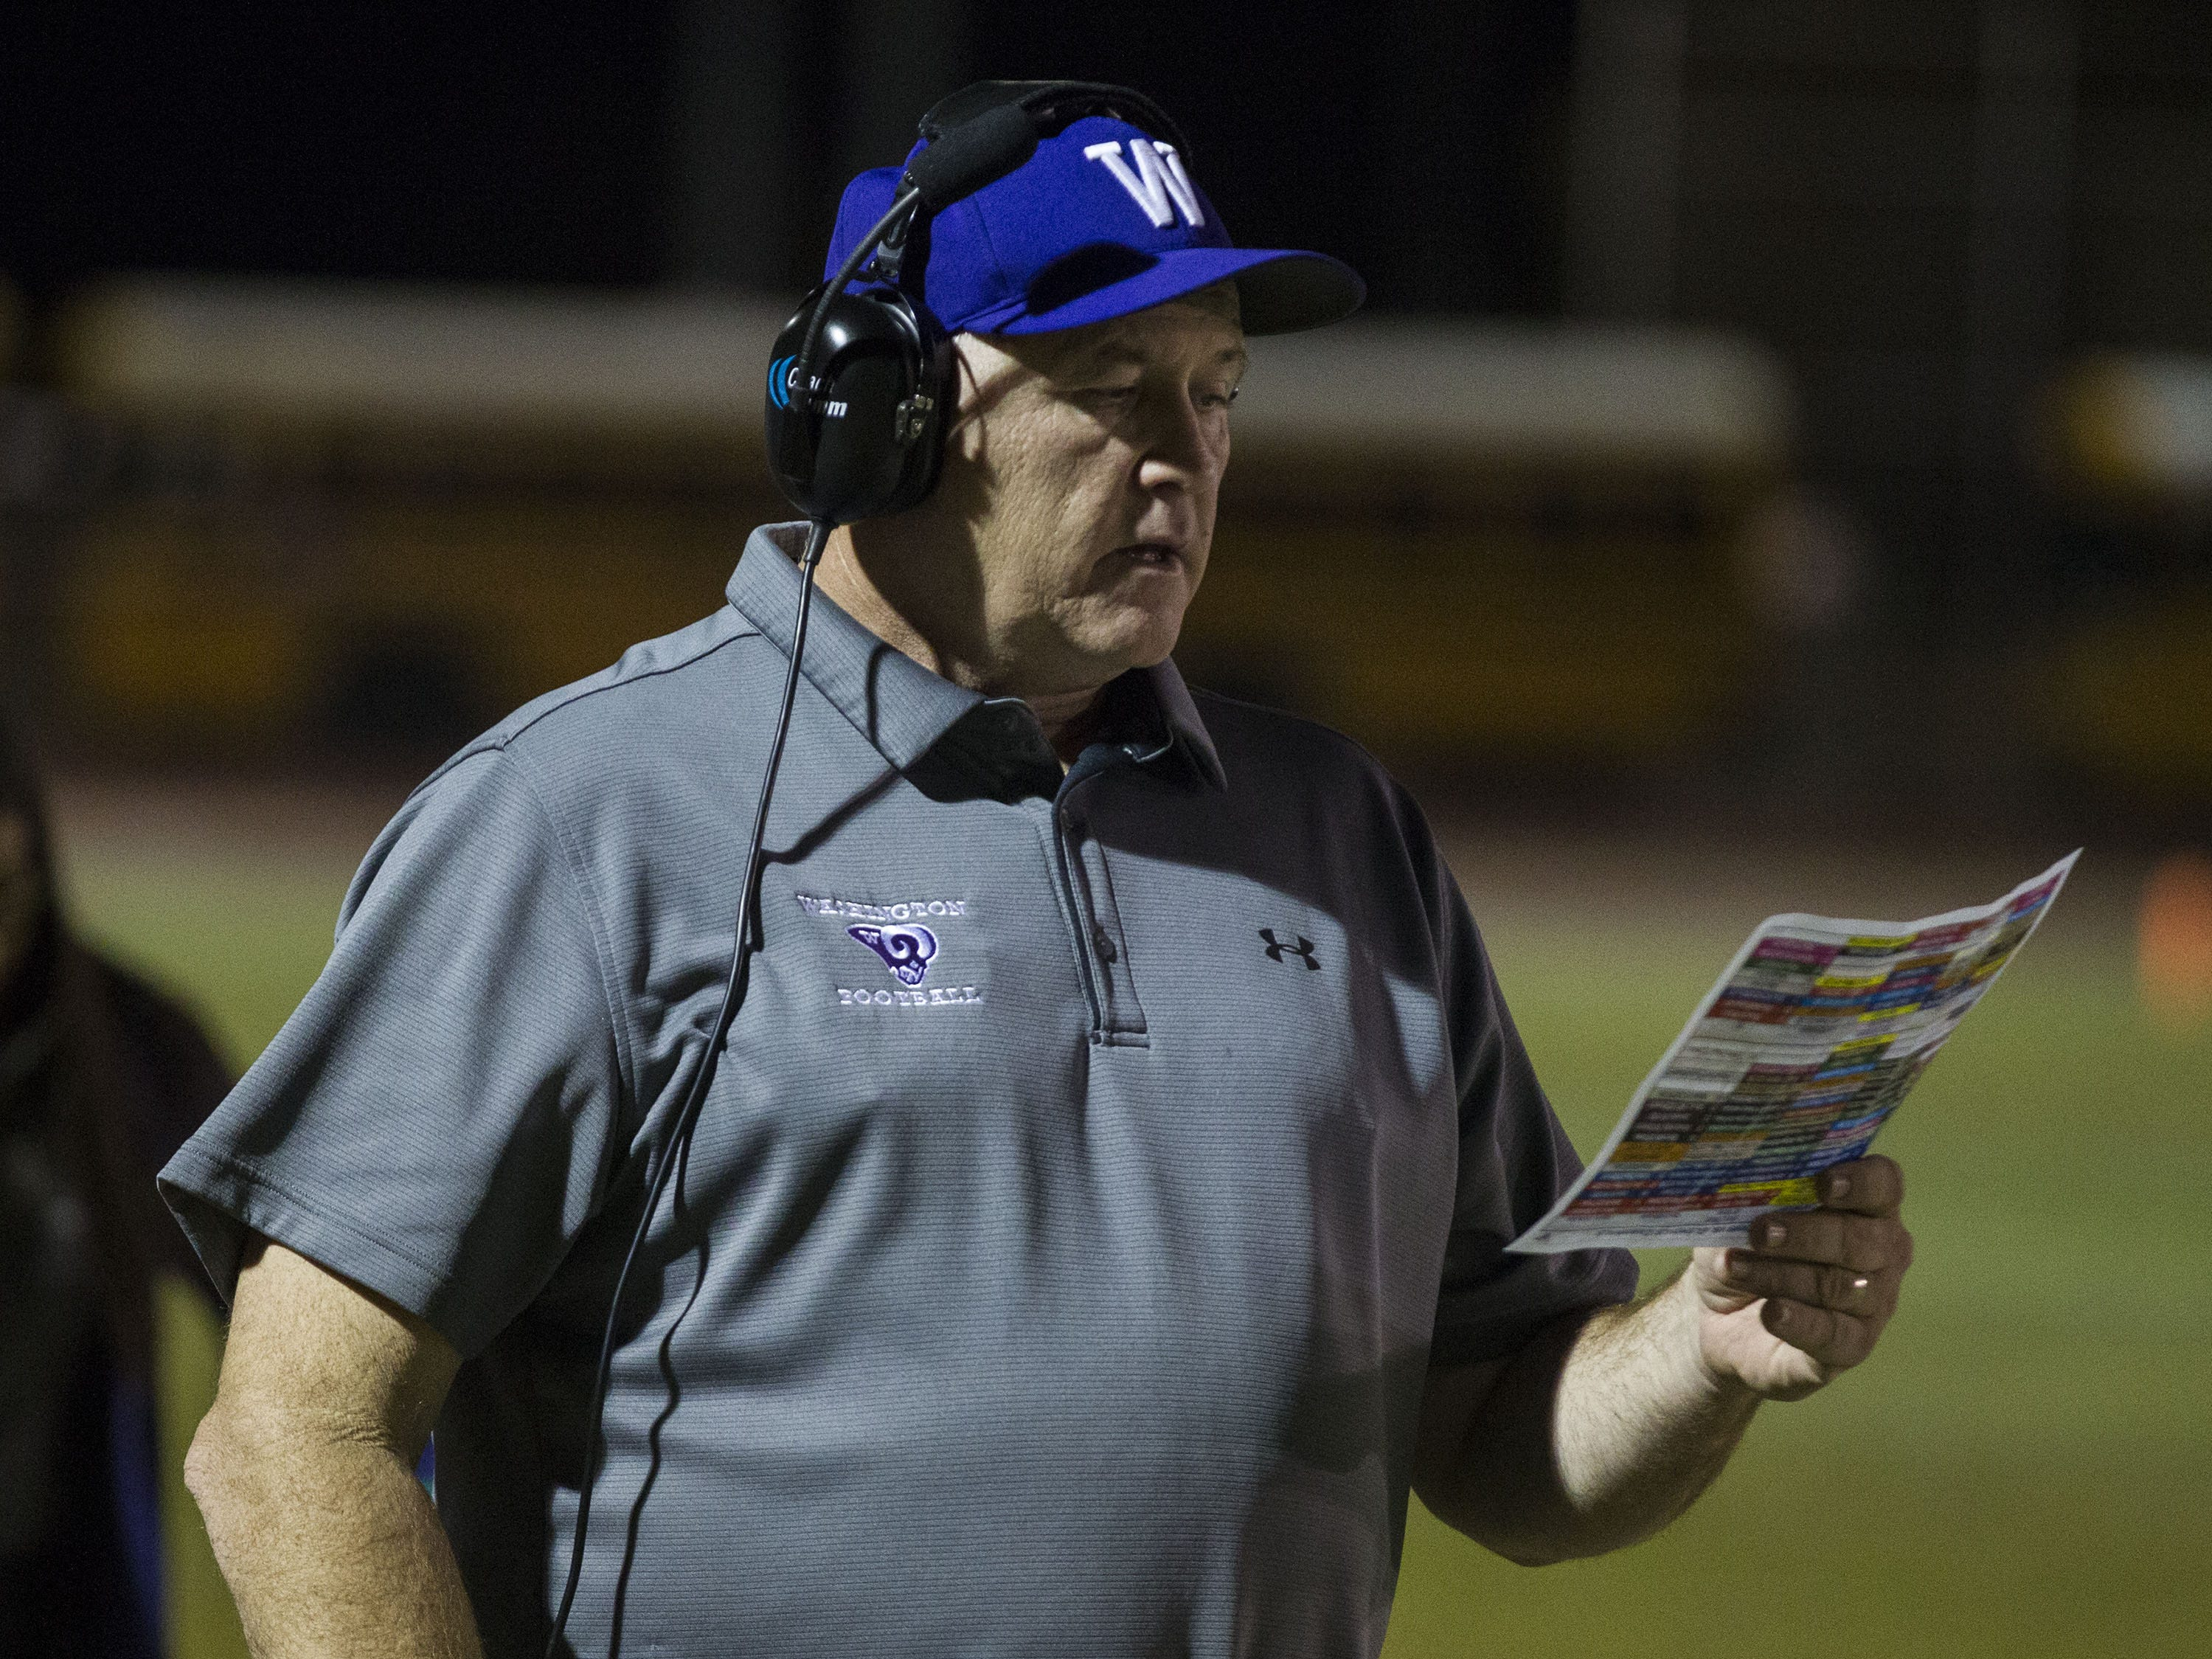 Washington coach Tim MayfieldÊlooks over the play sheet during their game with Glendale in Glendale Friday, Oct. 5, 2018. #azhsfb